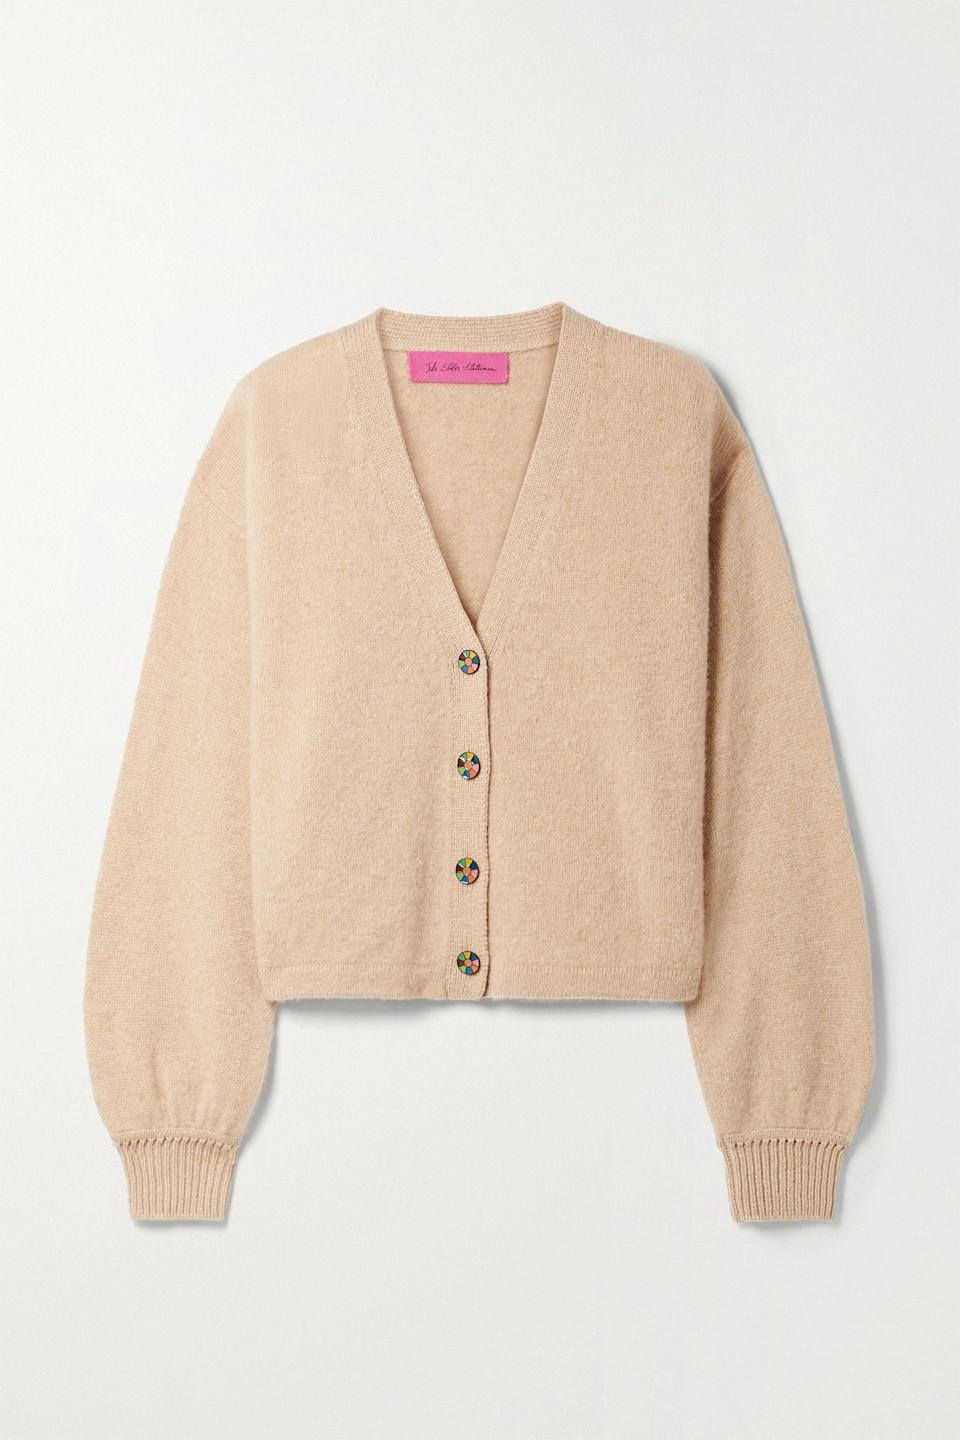 """<p><strong>THE ELDER STATESMAN</strong></p><p>net-a-porter.com</p><p><strong>$995.00</strong></p><p><a href=""""https://go.redirectingat.com?id=74968X1596630&url=https%3A%2F%2Fwww.net-a-porter.com%2Fen-us%2Fshop%2Fproduct%2Fthe-elder-statesman%2Fclothing%2Fcardigans%2Fcashmere-cardigan%2F11452292646160809&sref=https%3A%2F%2Fwww.townandcountrymag.com%2Fstyle%2Ffashion-trends%2Fg22673885%2Fcute-fall-sweaters%2F"""" rel=""""nofollow noopener"""" target=""""_blank"""" data-ylk=""""slk:Shop Now"""" class=""""link rapid-noclick-resp"""">Shop Now</a></p><p>Once you indulge in an Elder Statesman cashmere sweater, your life is simply never the same. With a slightly boxy cut and balloon sleeves, the effect is refined yet simple.</p>"""